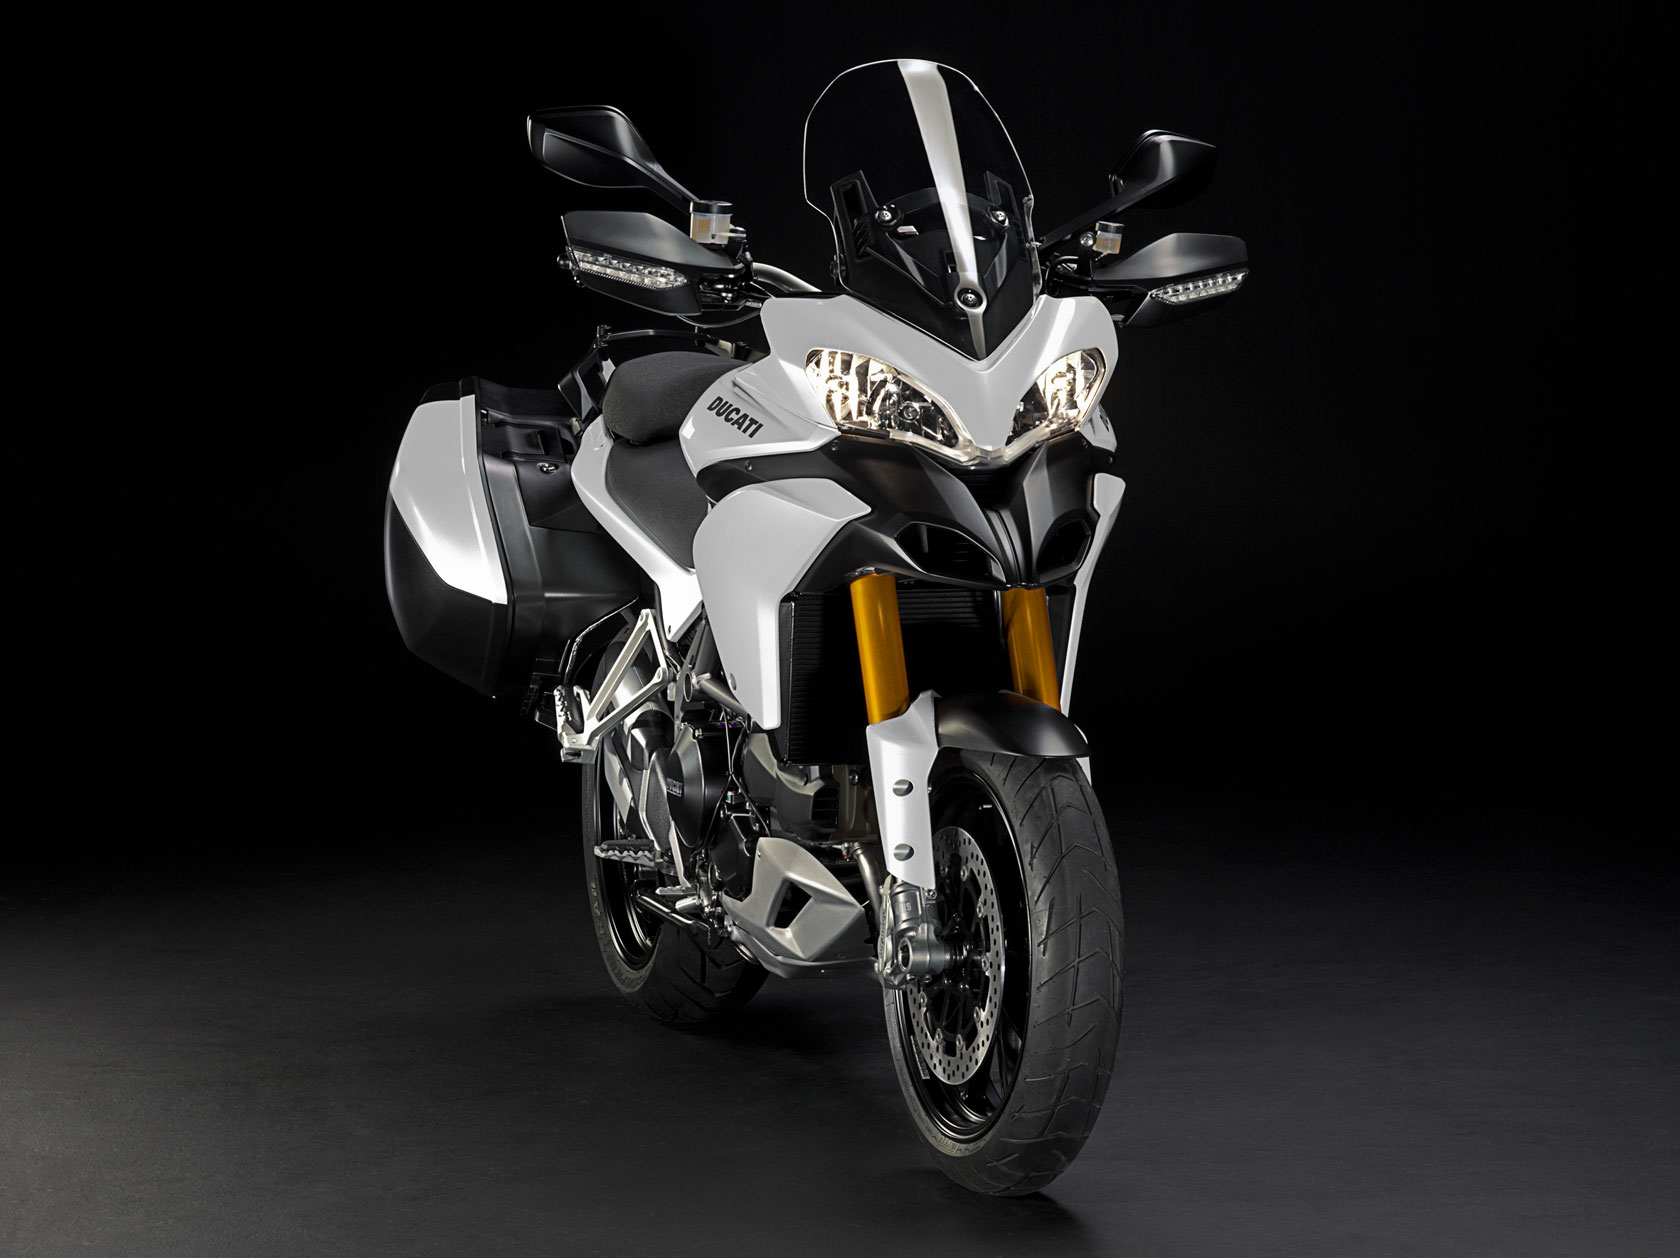 Ducati Multistrada 1200 S Sport 2011 wallpapers #12872